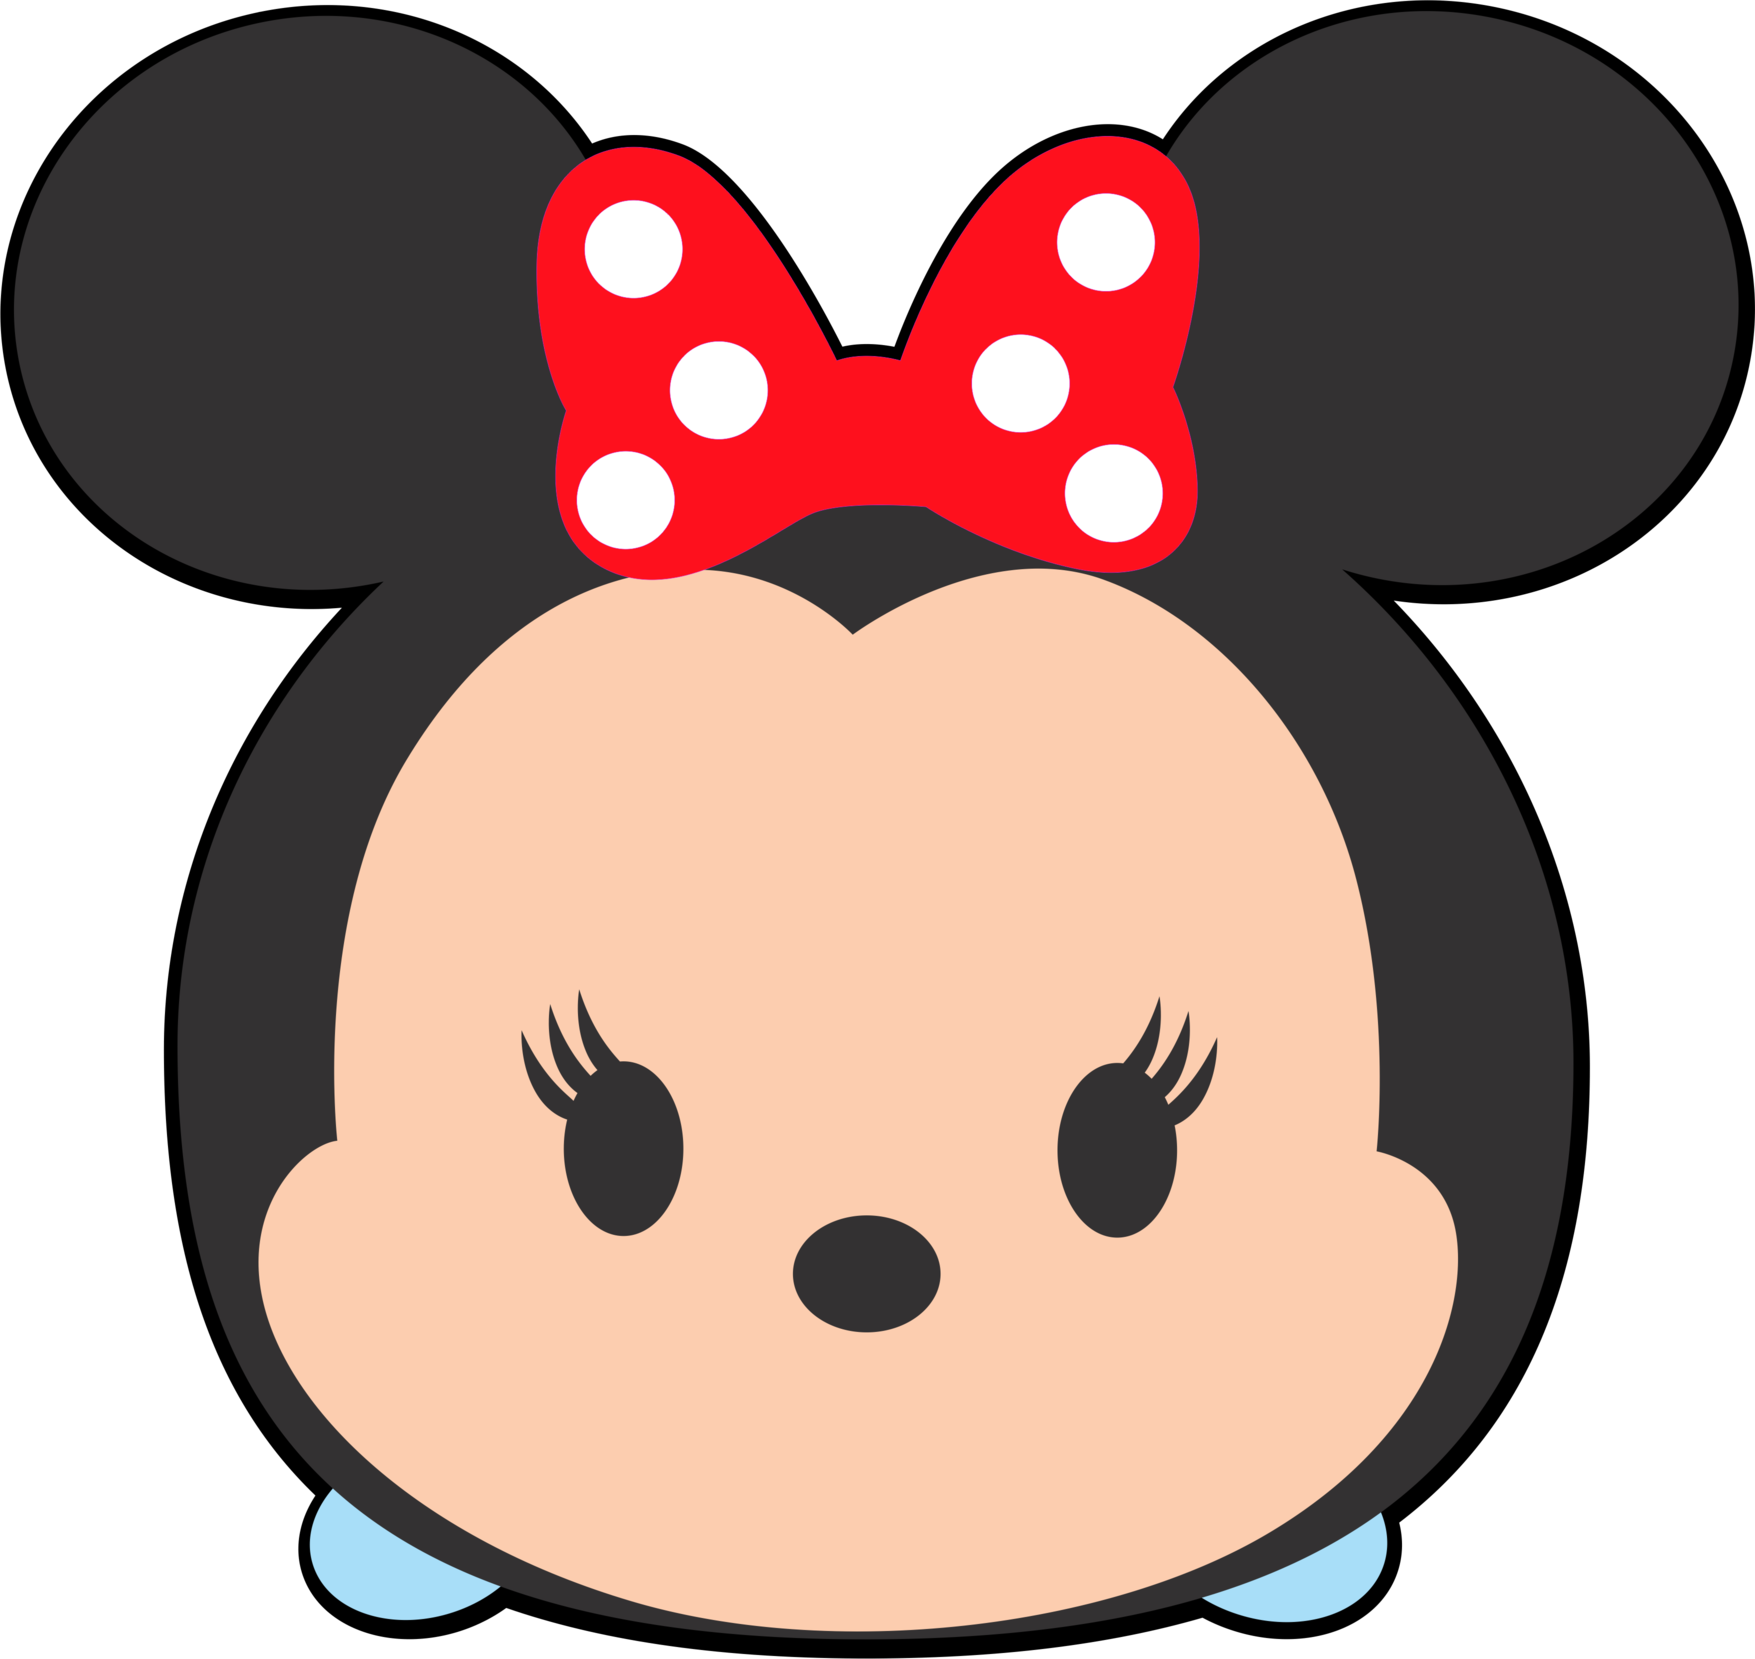 Disney tsum tsum clipart clipart library download Disney Tsum Tsum Clipart Minnie Mouse clipart library download